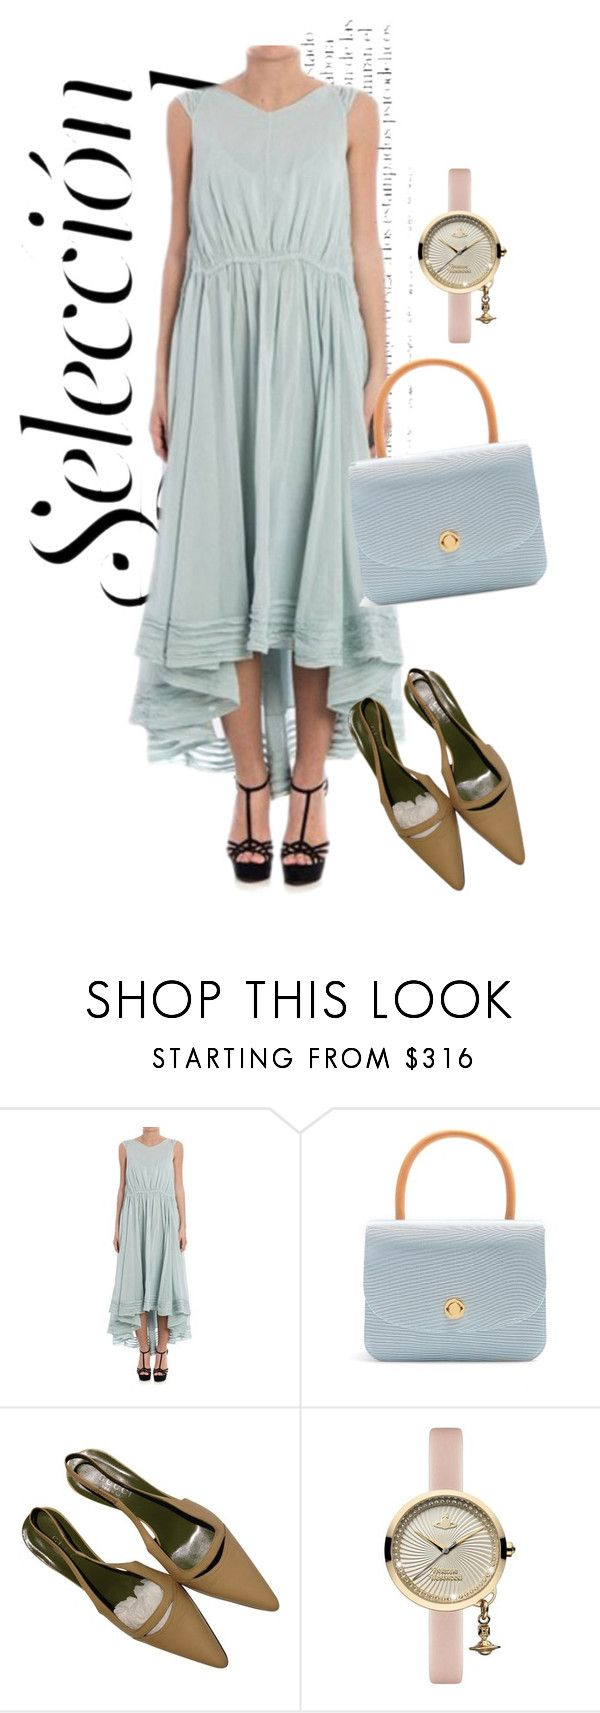 """""""dress"""" by masayuki4499 ❤ liked on Polyvore featuring Forte Forte, Mansur Gavriel, Gucci and Vivienne Westwood"""